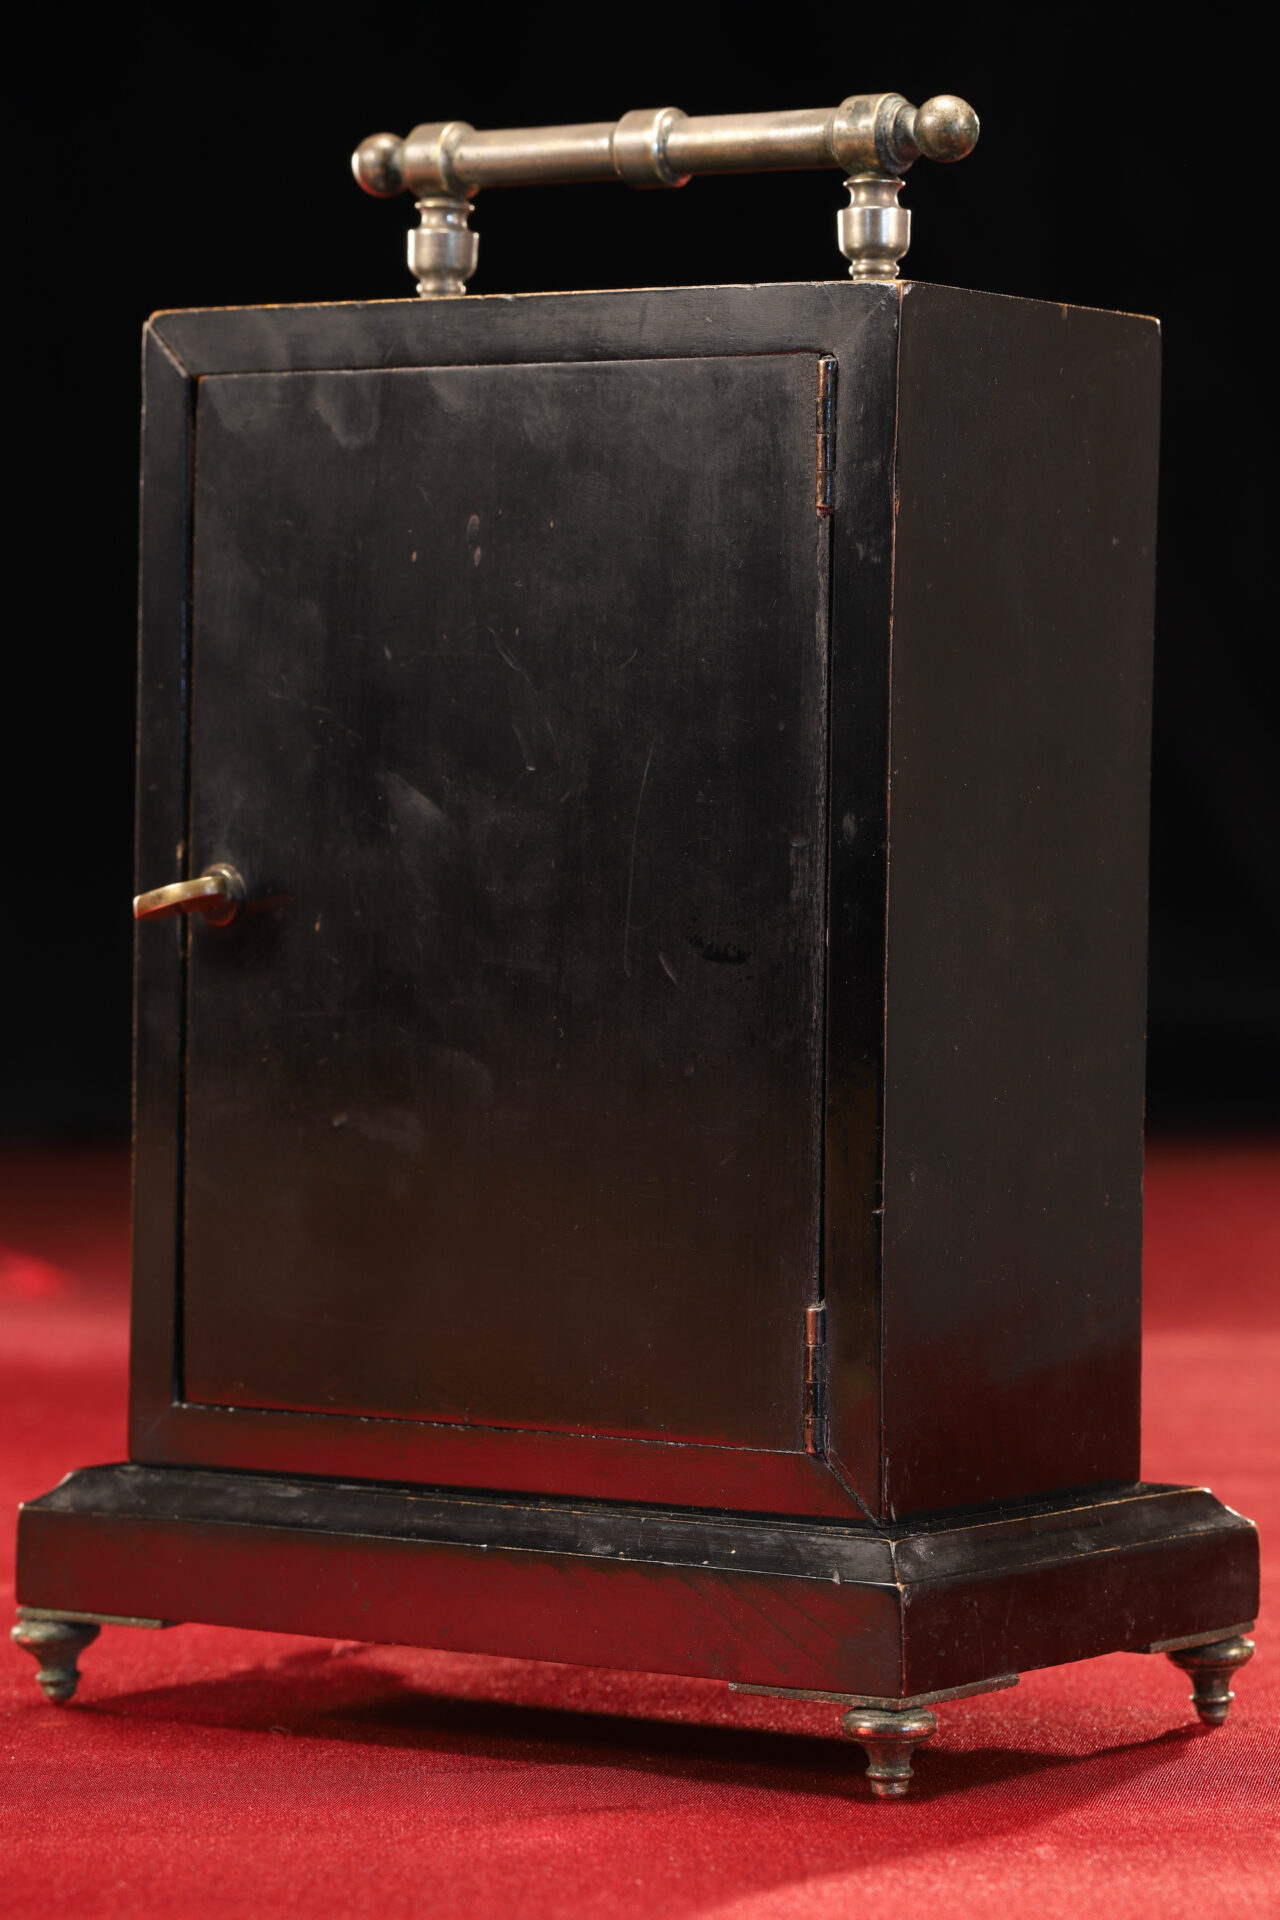 Image of reverse of Ebonised Recording Aneroid Barometer or Barograph c1878 taken from righthand side